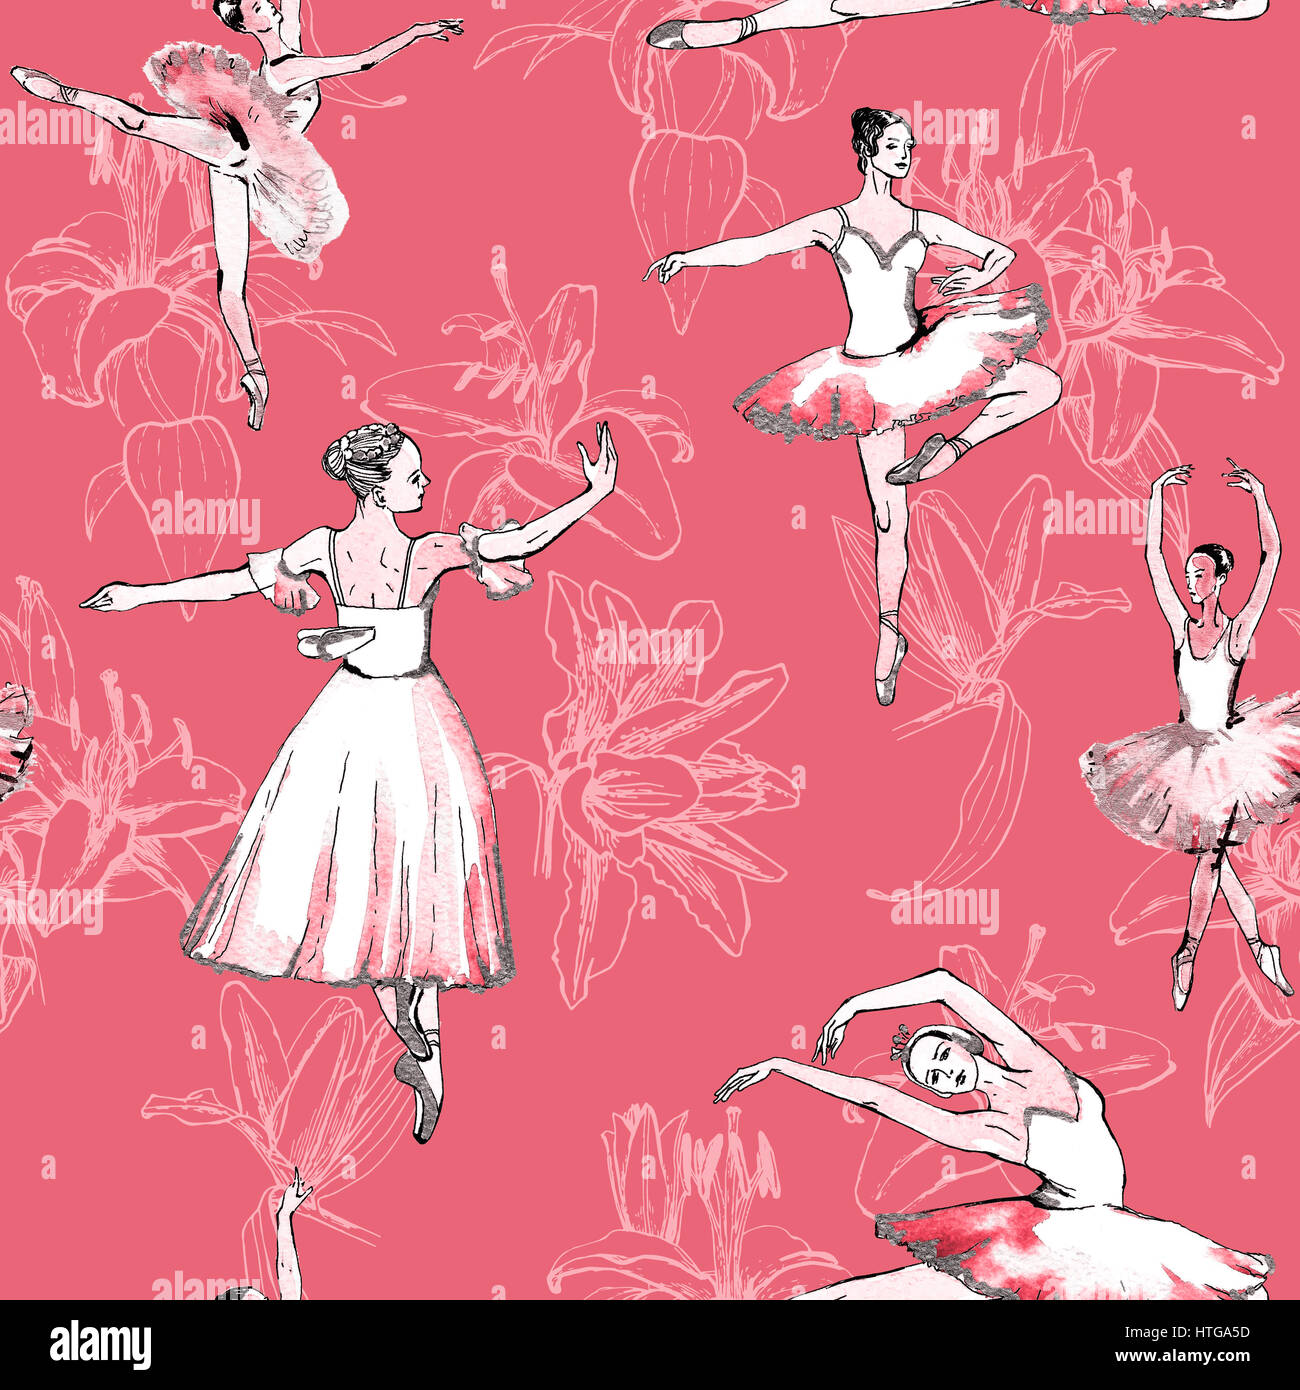 Seamless pattern of ballet dancers royalty free stock photography - Seamless Pattern Of Ballet Dancers And White Lilies Freehand Drawing Watercolor Painting Isolated On Pink Background Fabric Texture Wallpaper